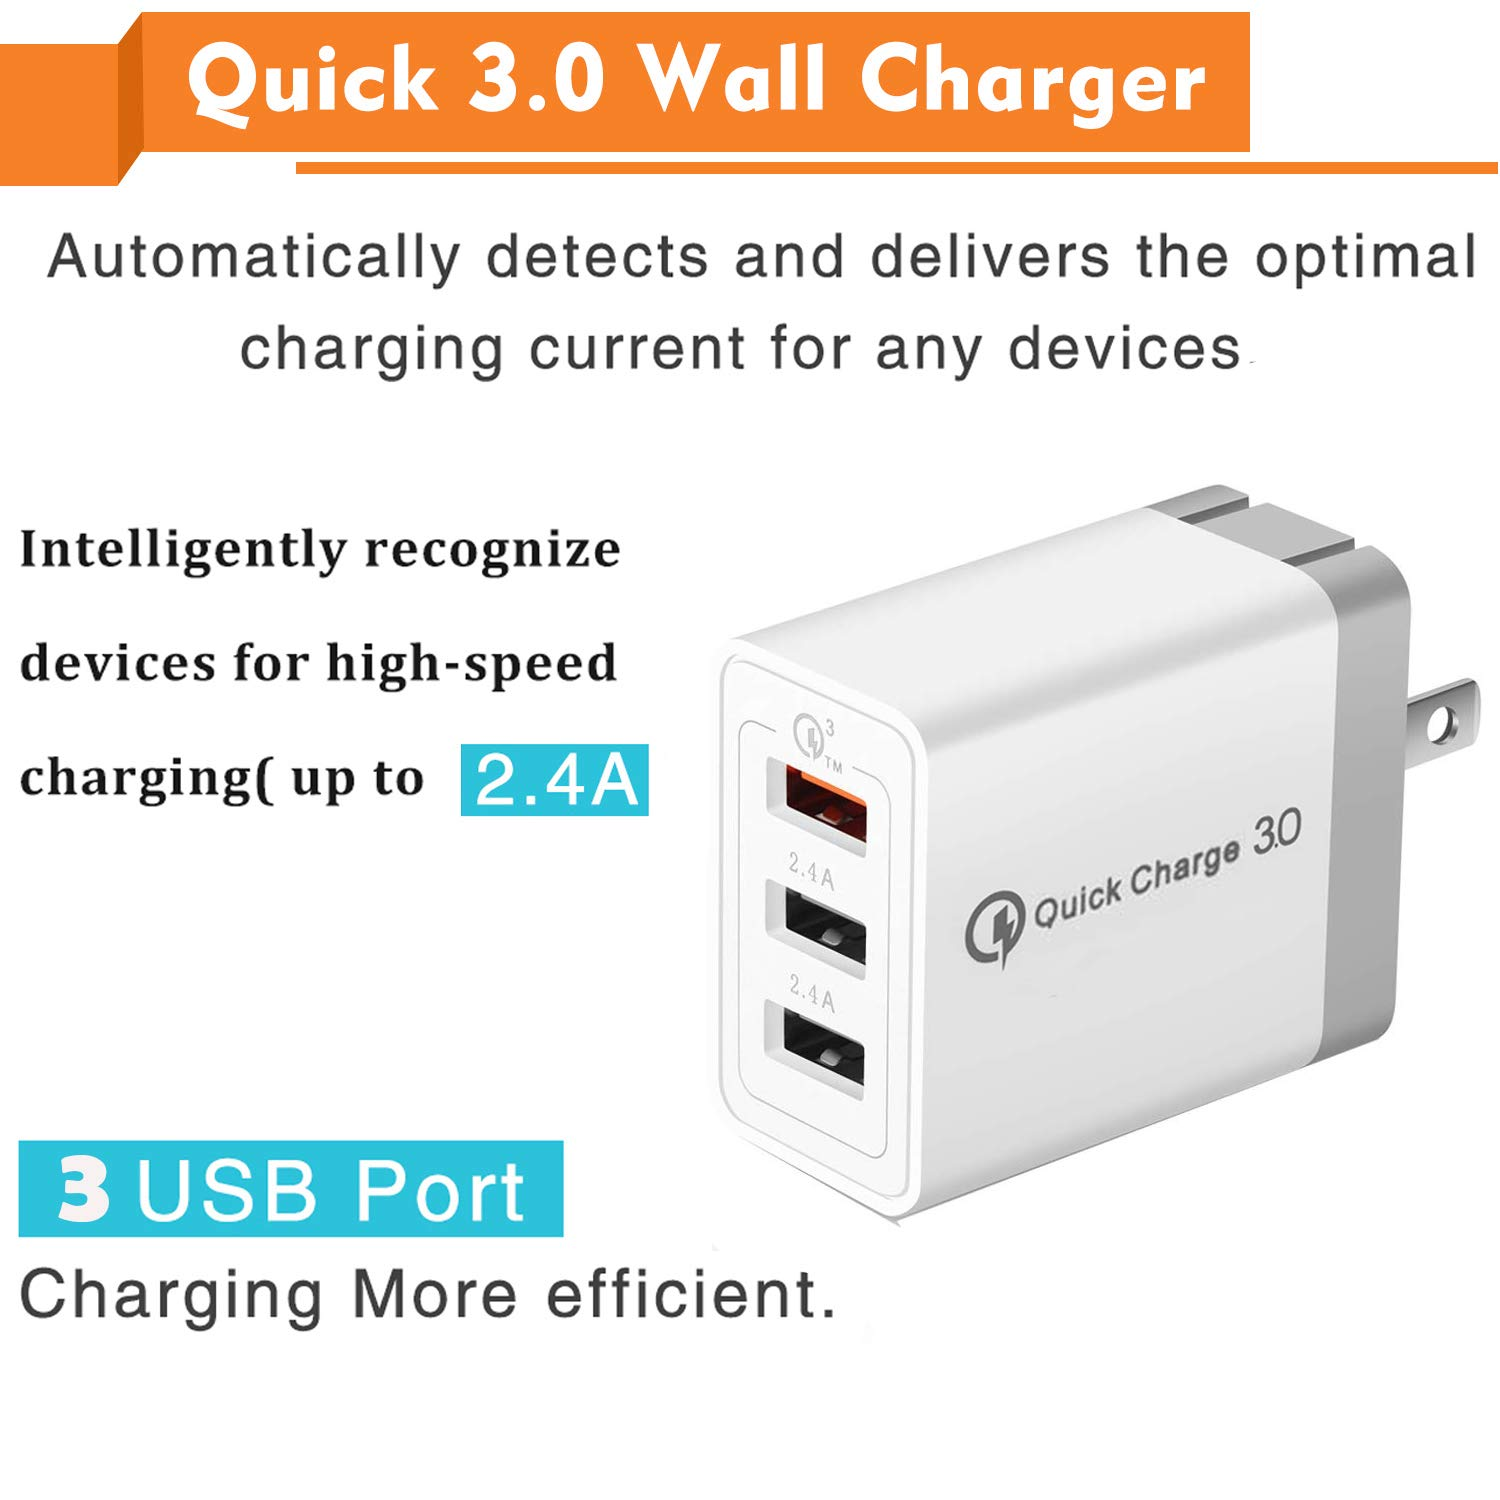 Qc3.0 3 Usb-poort Wall Charger Qc 3.0 Usb Wall Charger Adapter Met Opvouwbare Plug